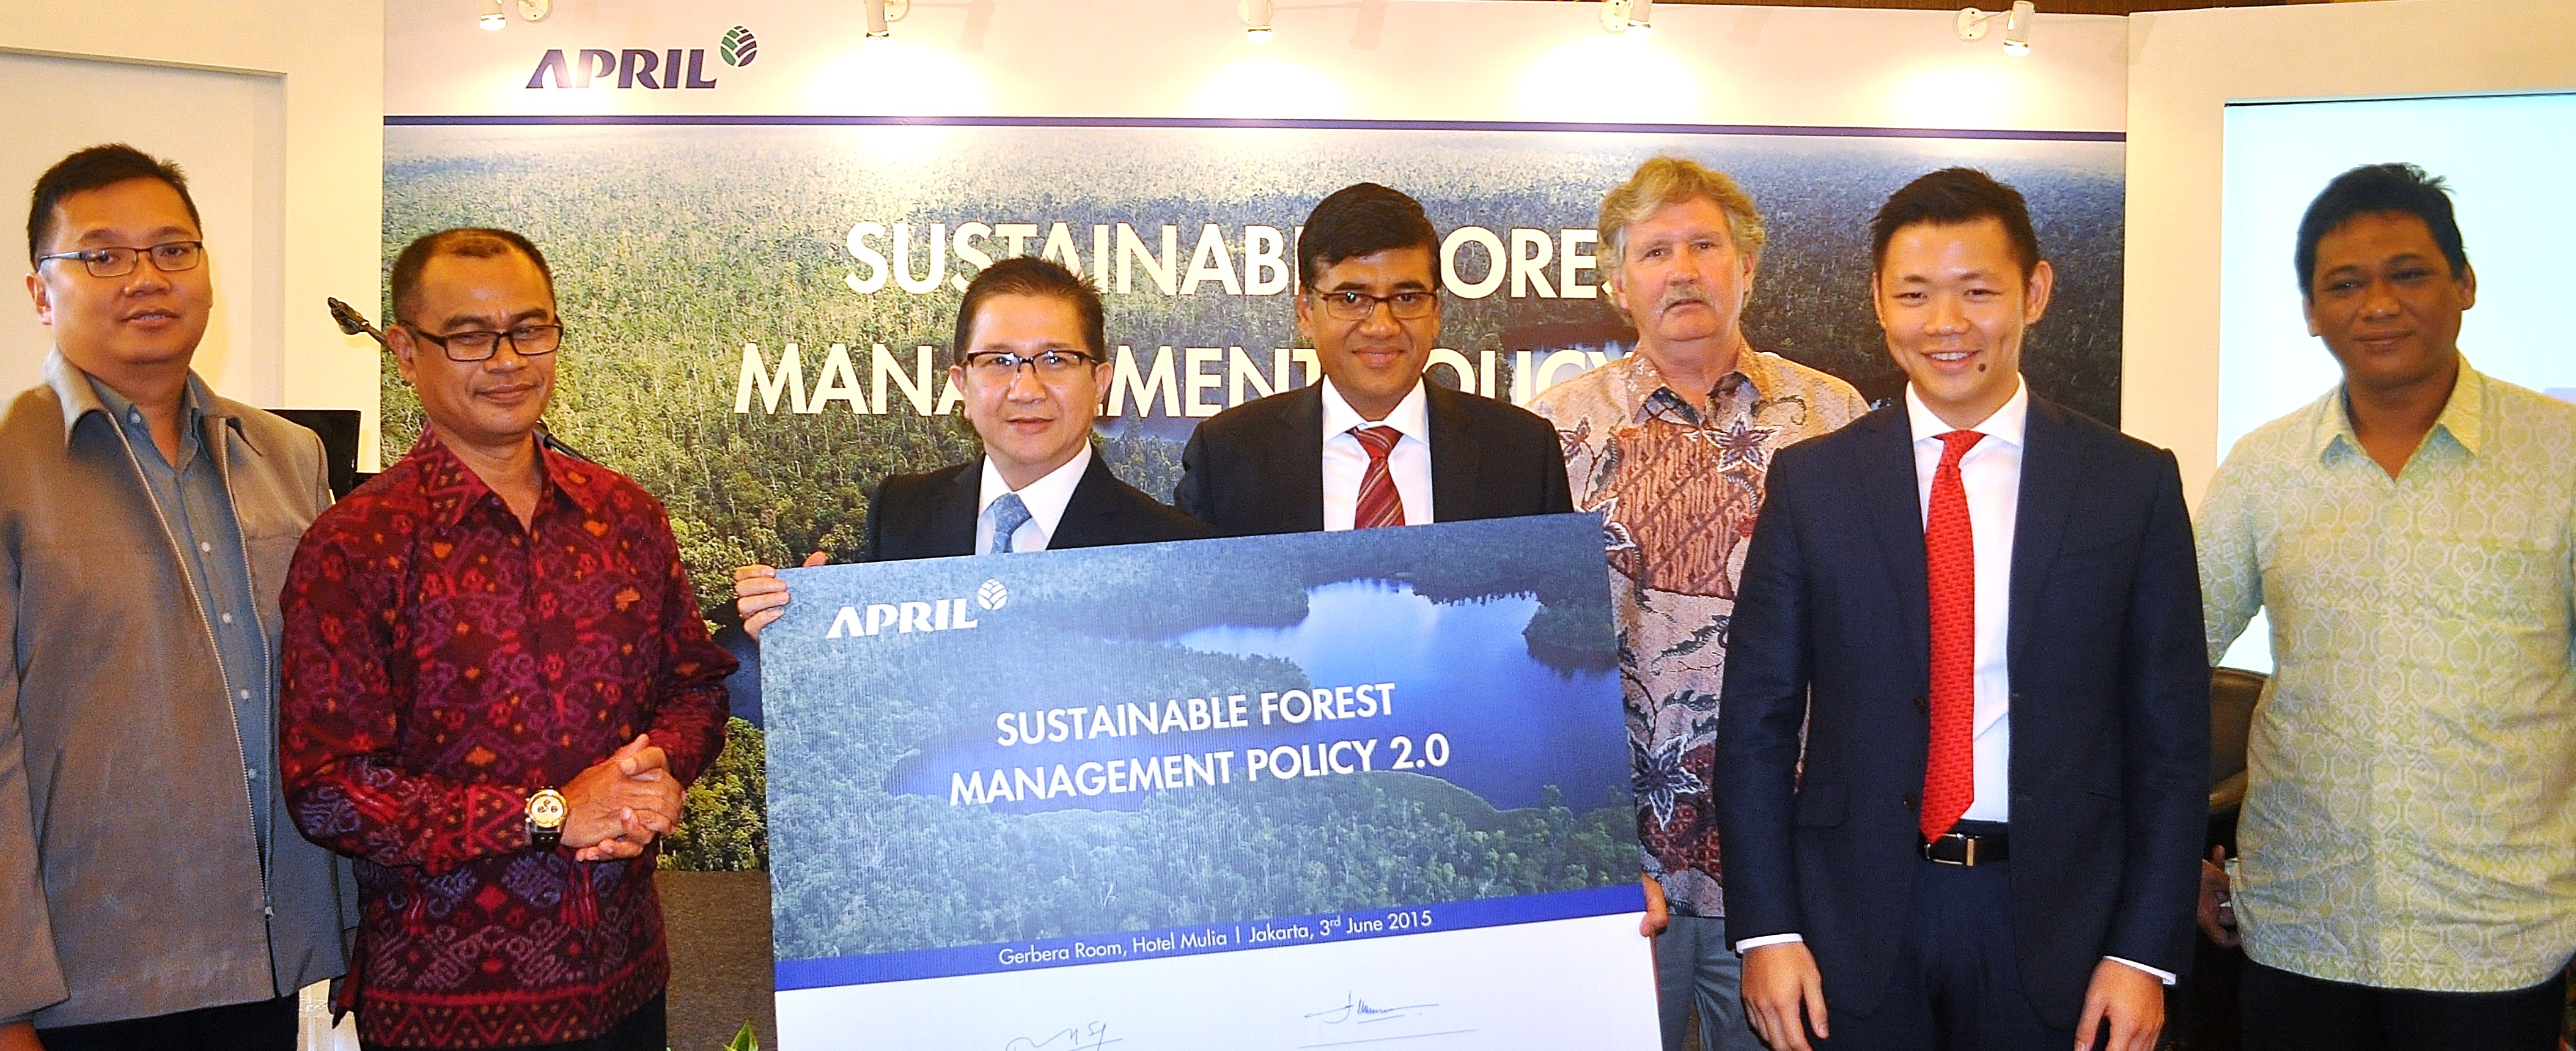 From left to right: Aditya Bayunanda WWF Indonesia, Ida Bagus Putera Parthama Director General Sustainable Forest Management Ministry of Environment and Forestry, President Director PT. Riau Andalan Pulp and Paper (RAPP) Tony Wenas, President APRIL Praveen Singhavi, Chairman of Stakeholder Advisory Committee (SAC) Joseph Lawson, RGE Director Anderson Tanoto, Greenpeace Bustar Maitar